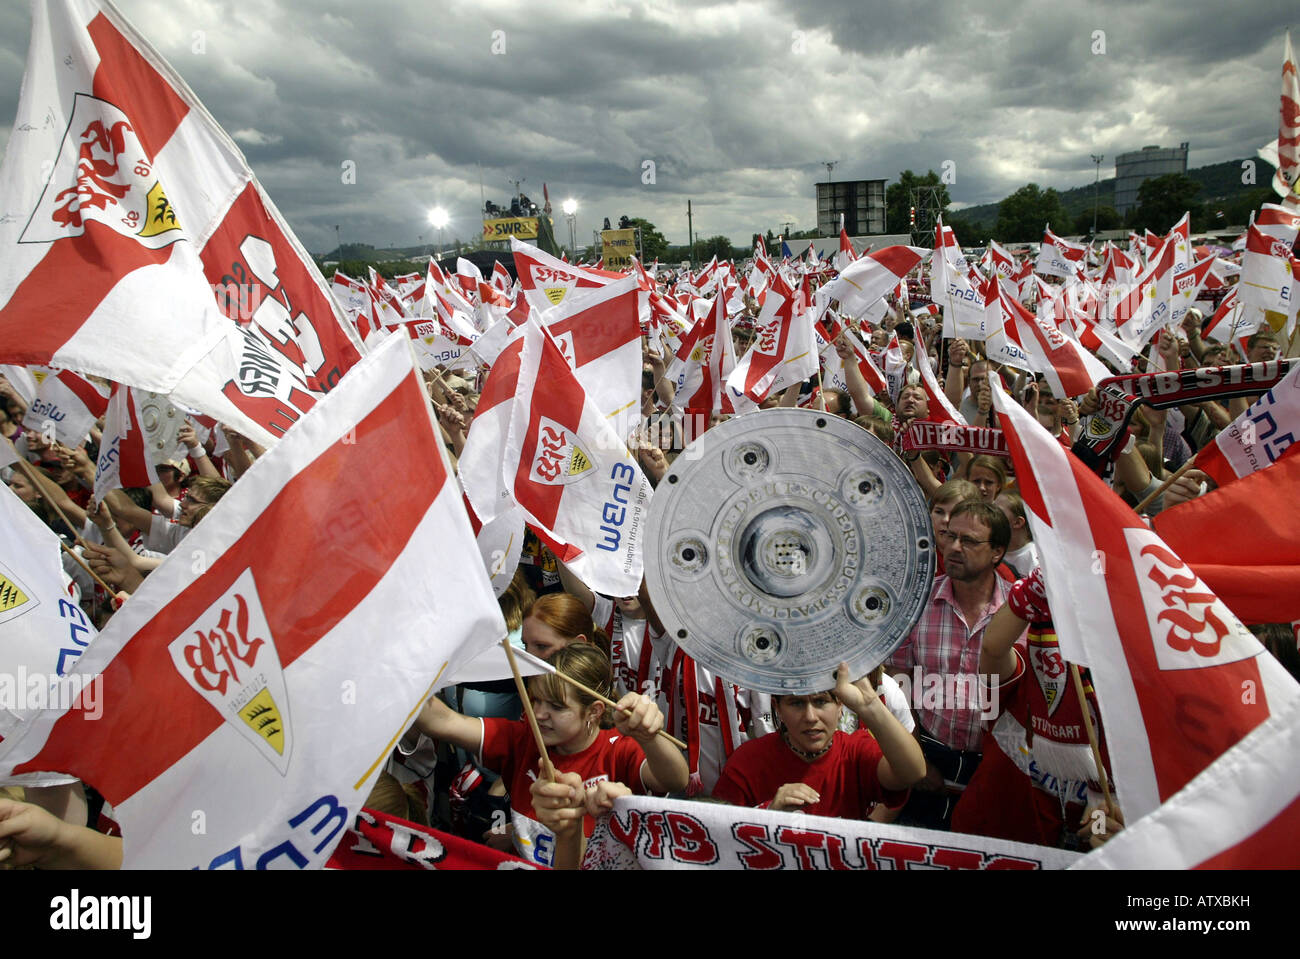 Supporters of the German soccer team VfB Stuttgart celebrating the German Cup final Stock Photo